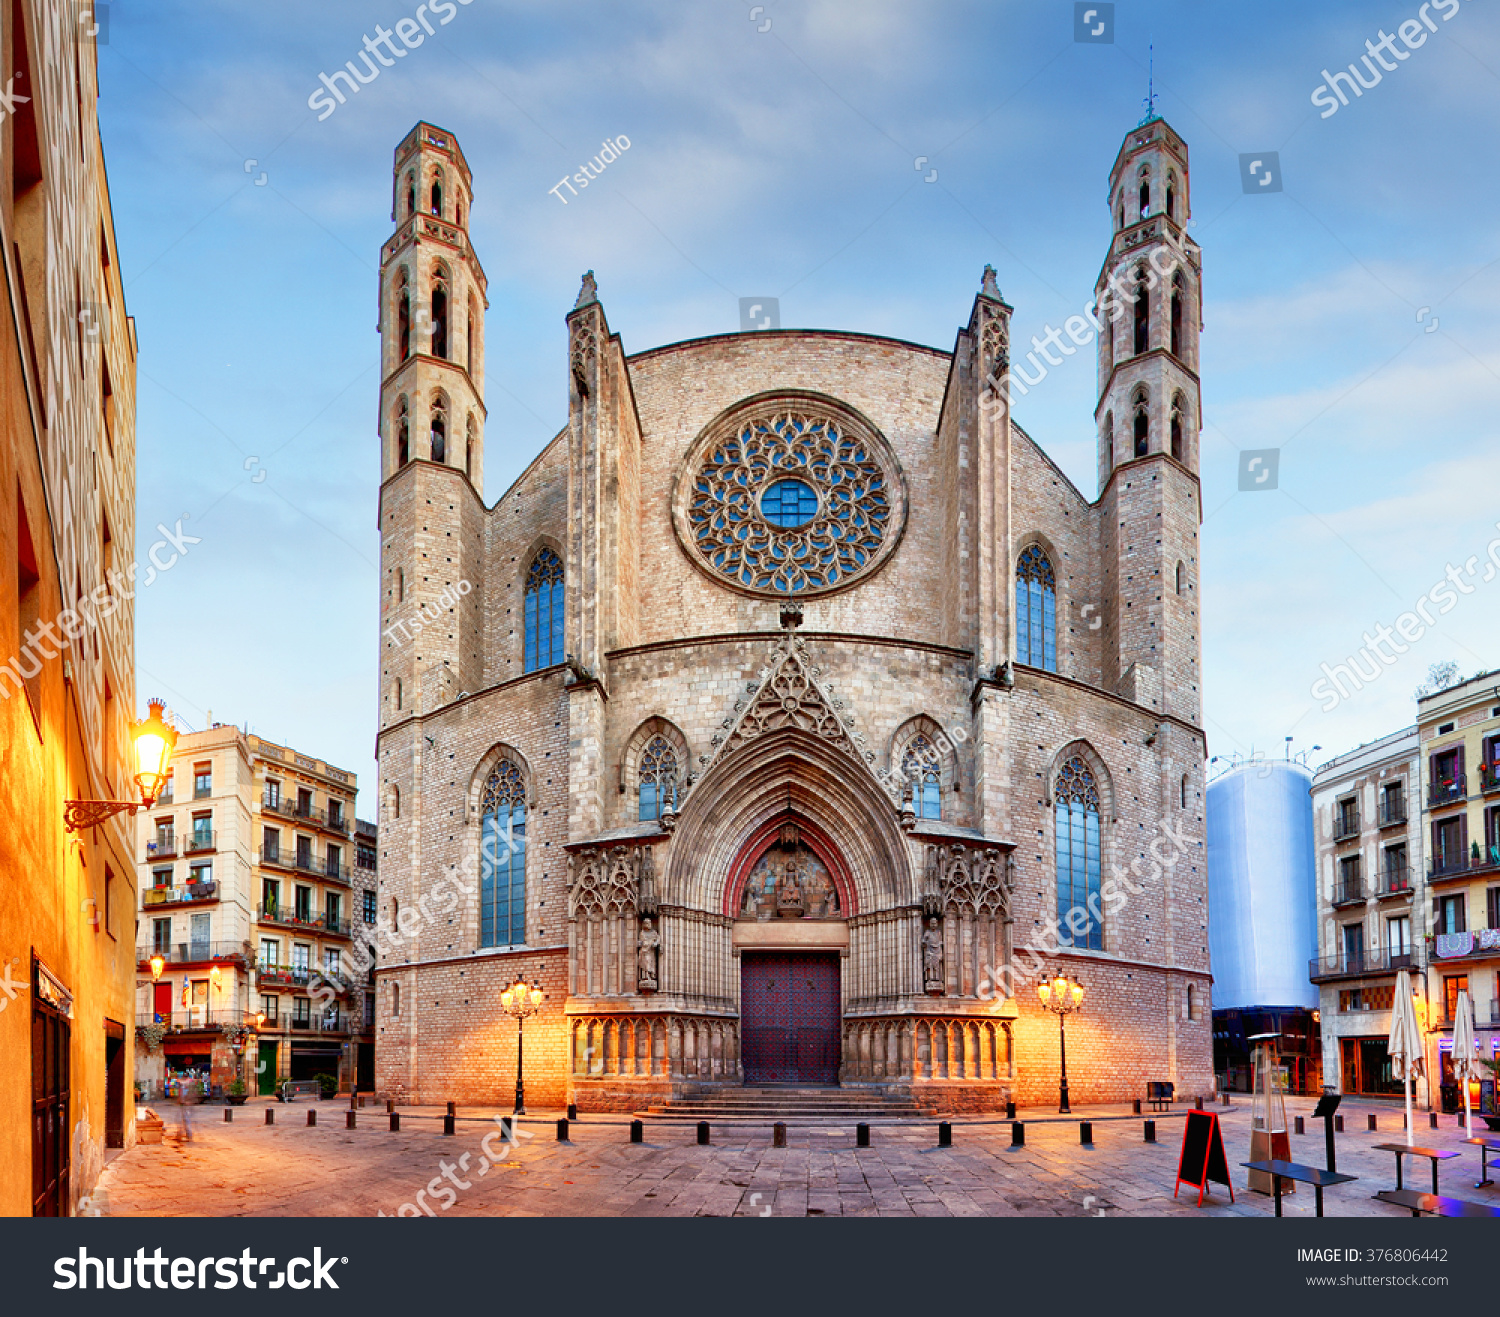 Torre Bellesguard Barcelona, Santa Maria Del Mar Church Barcelona Stock Photo 376806442 ...